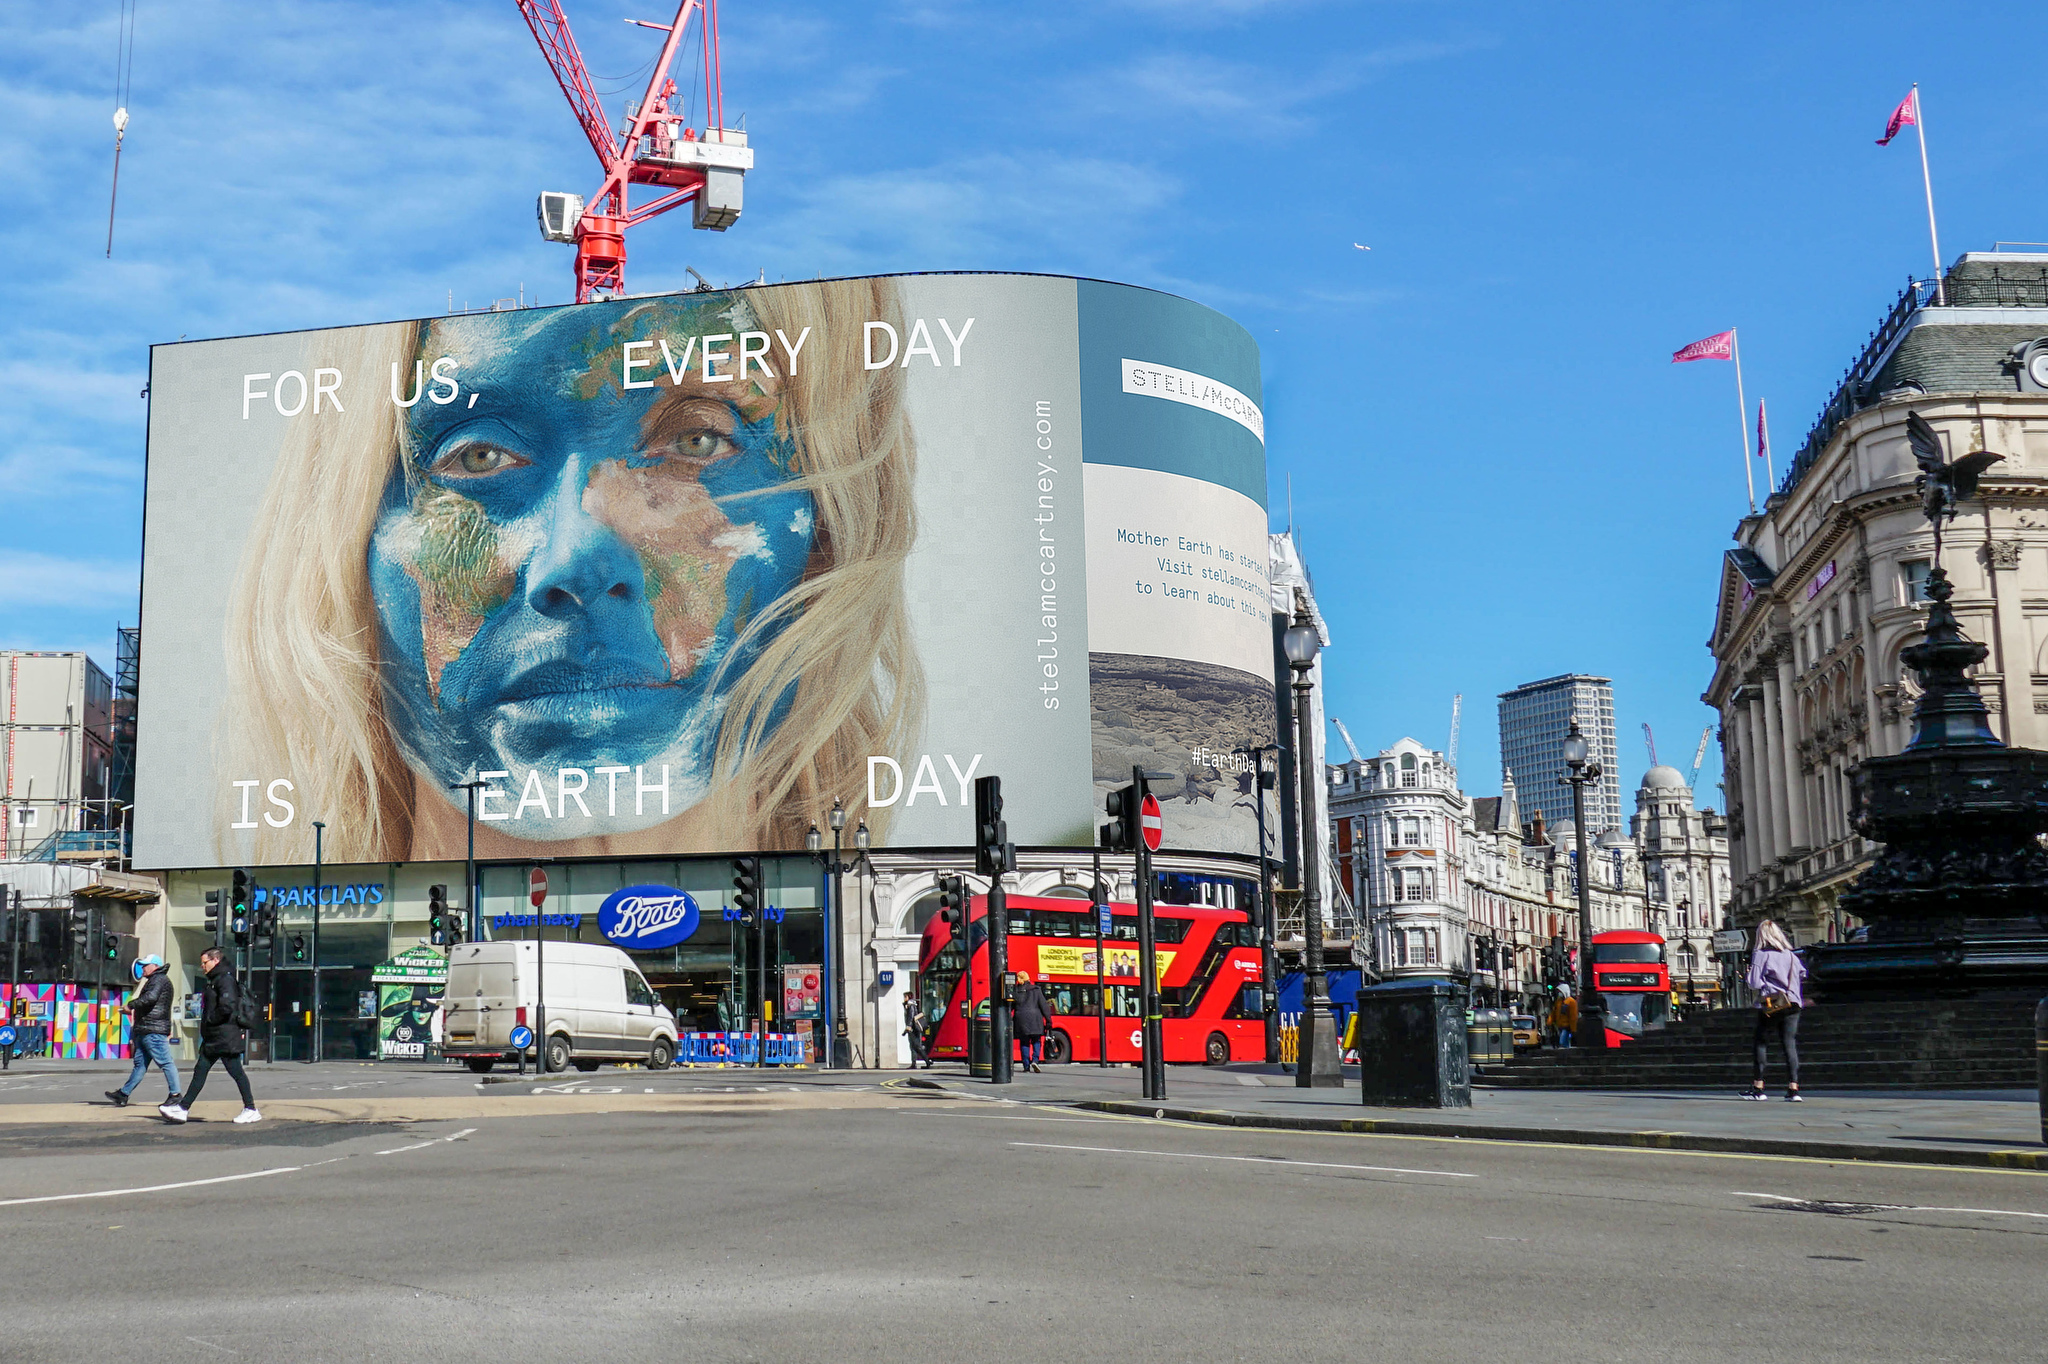 For Earth Day 2020, Stella McCartney took over the major screens in London's Piccadilly Circus. For the project, she upcycled her spring 2020 campaign featuring Amber Valletta as Mother Earth.